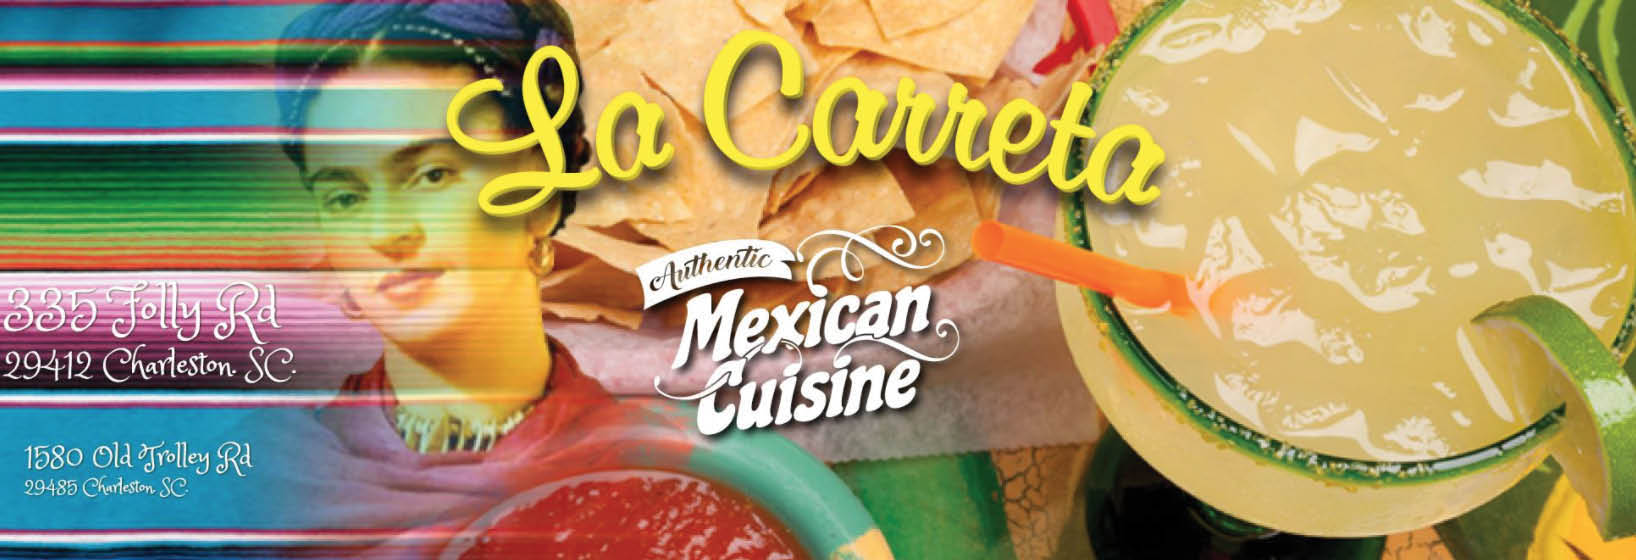 La Carreta in Summerville, SC Banner ad